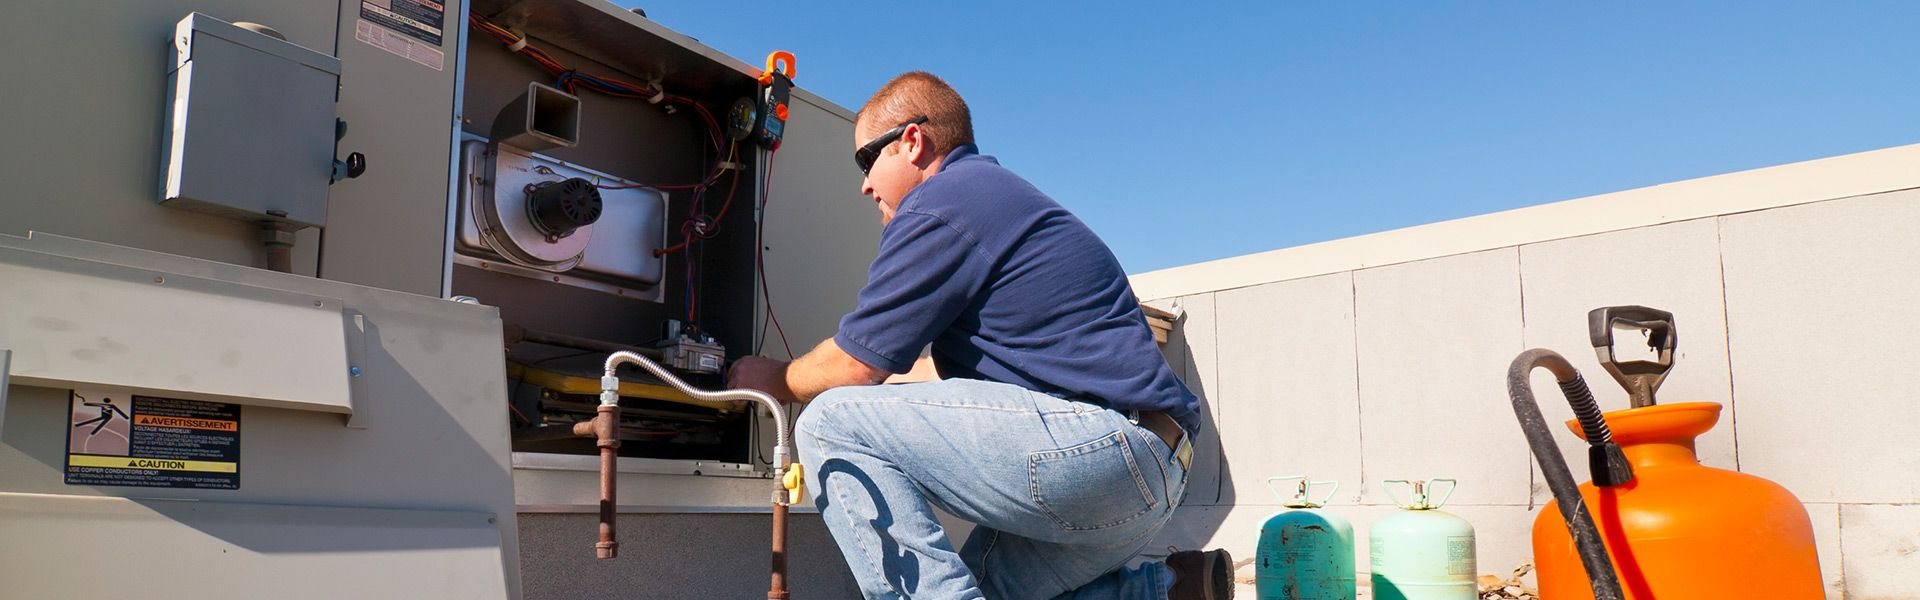 Commercial Air Conditioning Maintenance in Fort Lauderdale